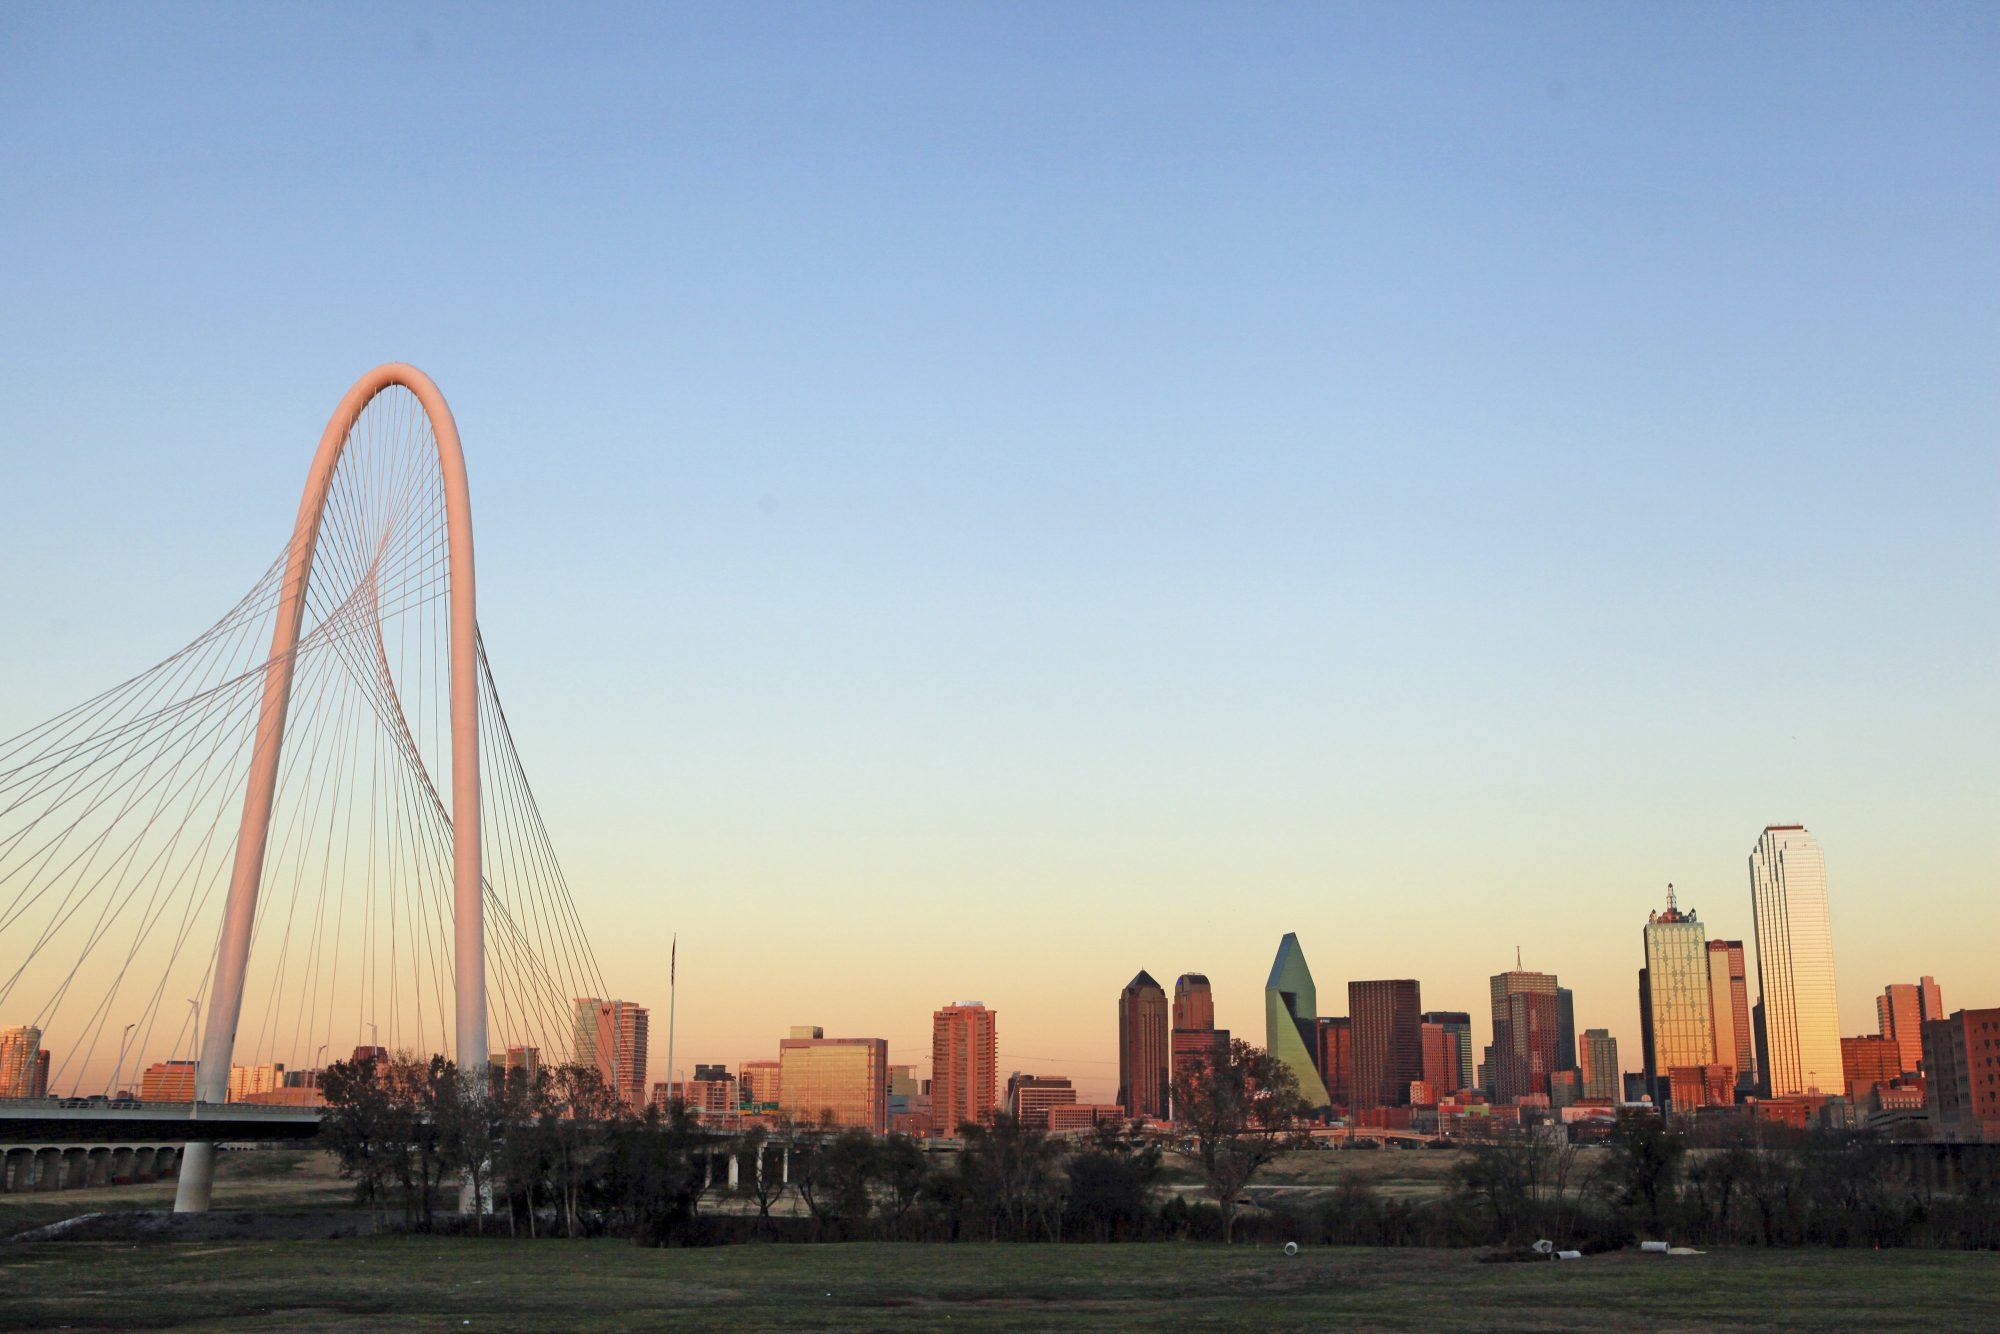 Dallas, Texas- Big D